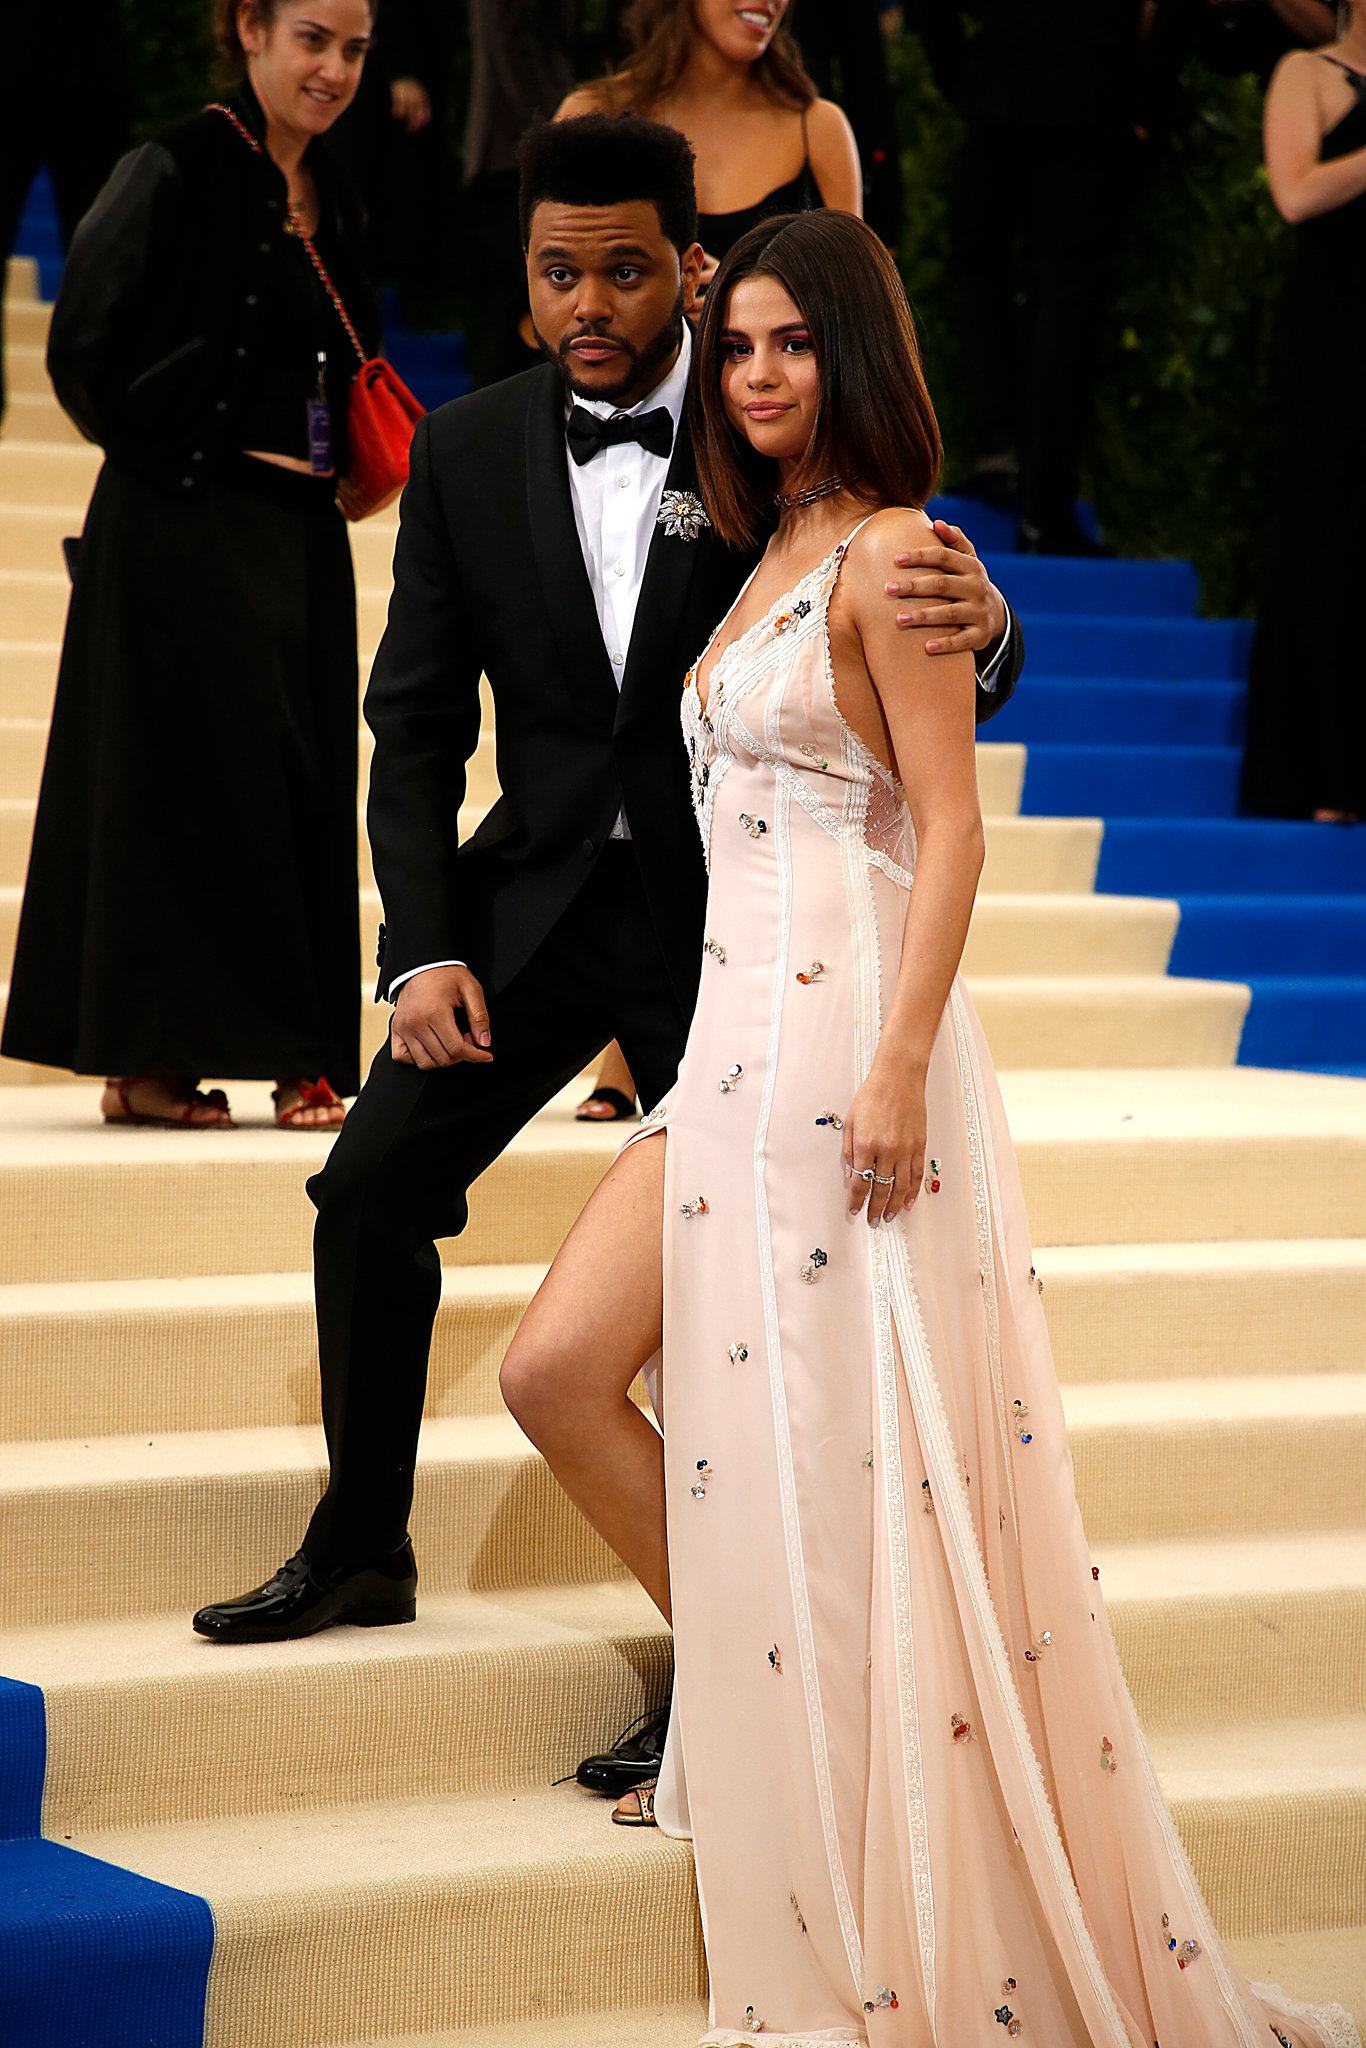 met gala 2017 the weeknd selena gomez